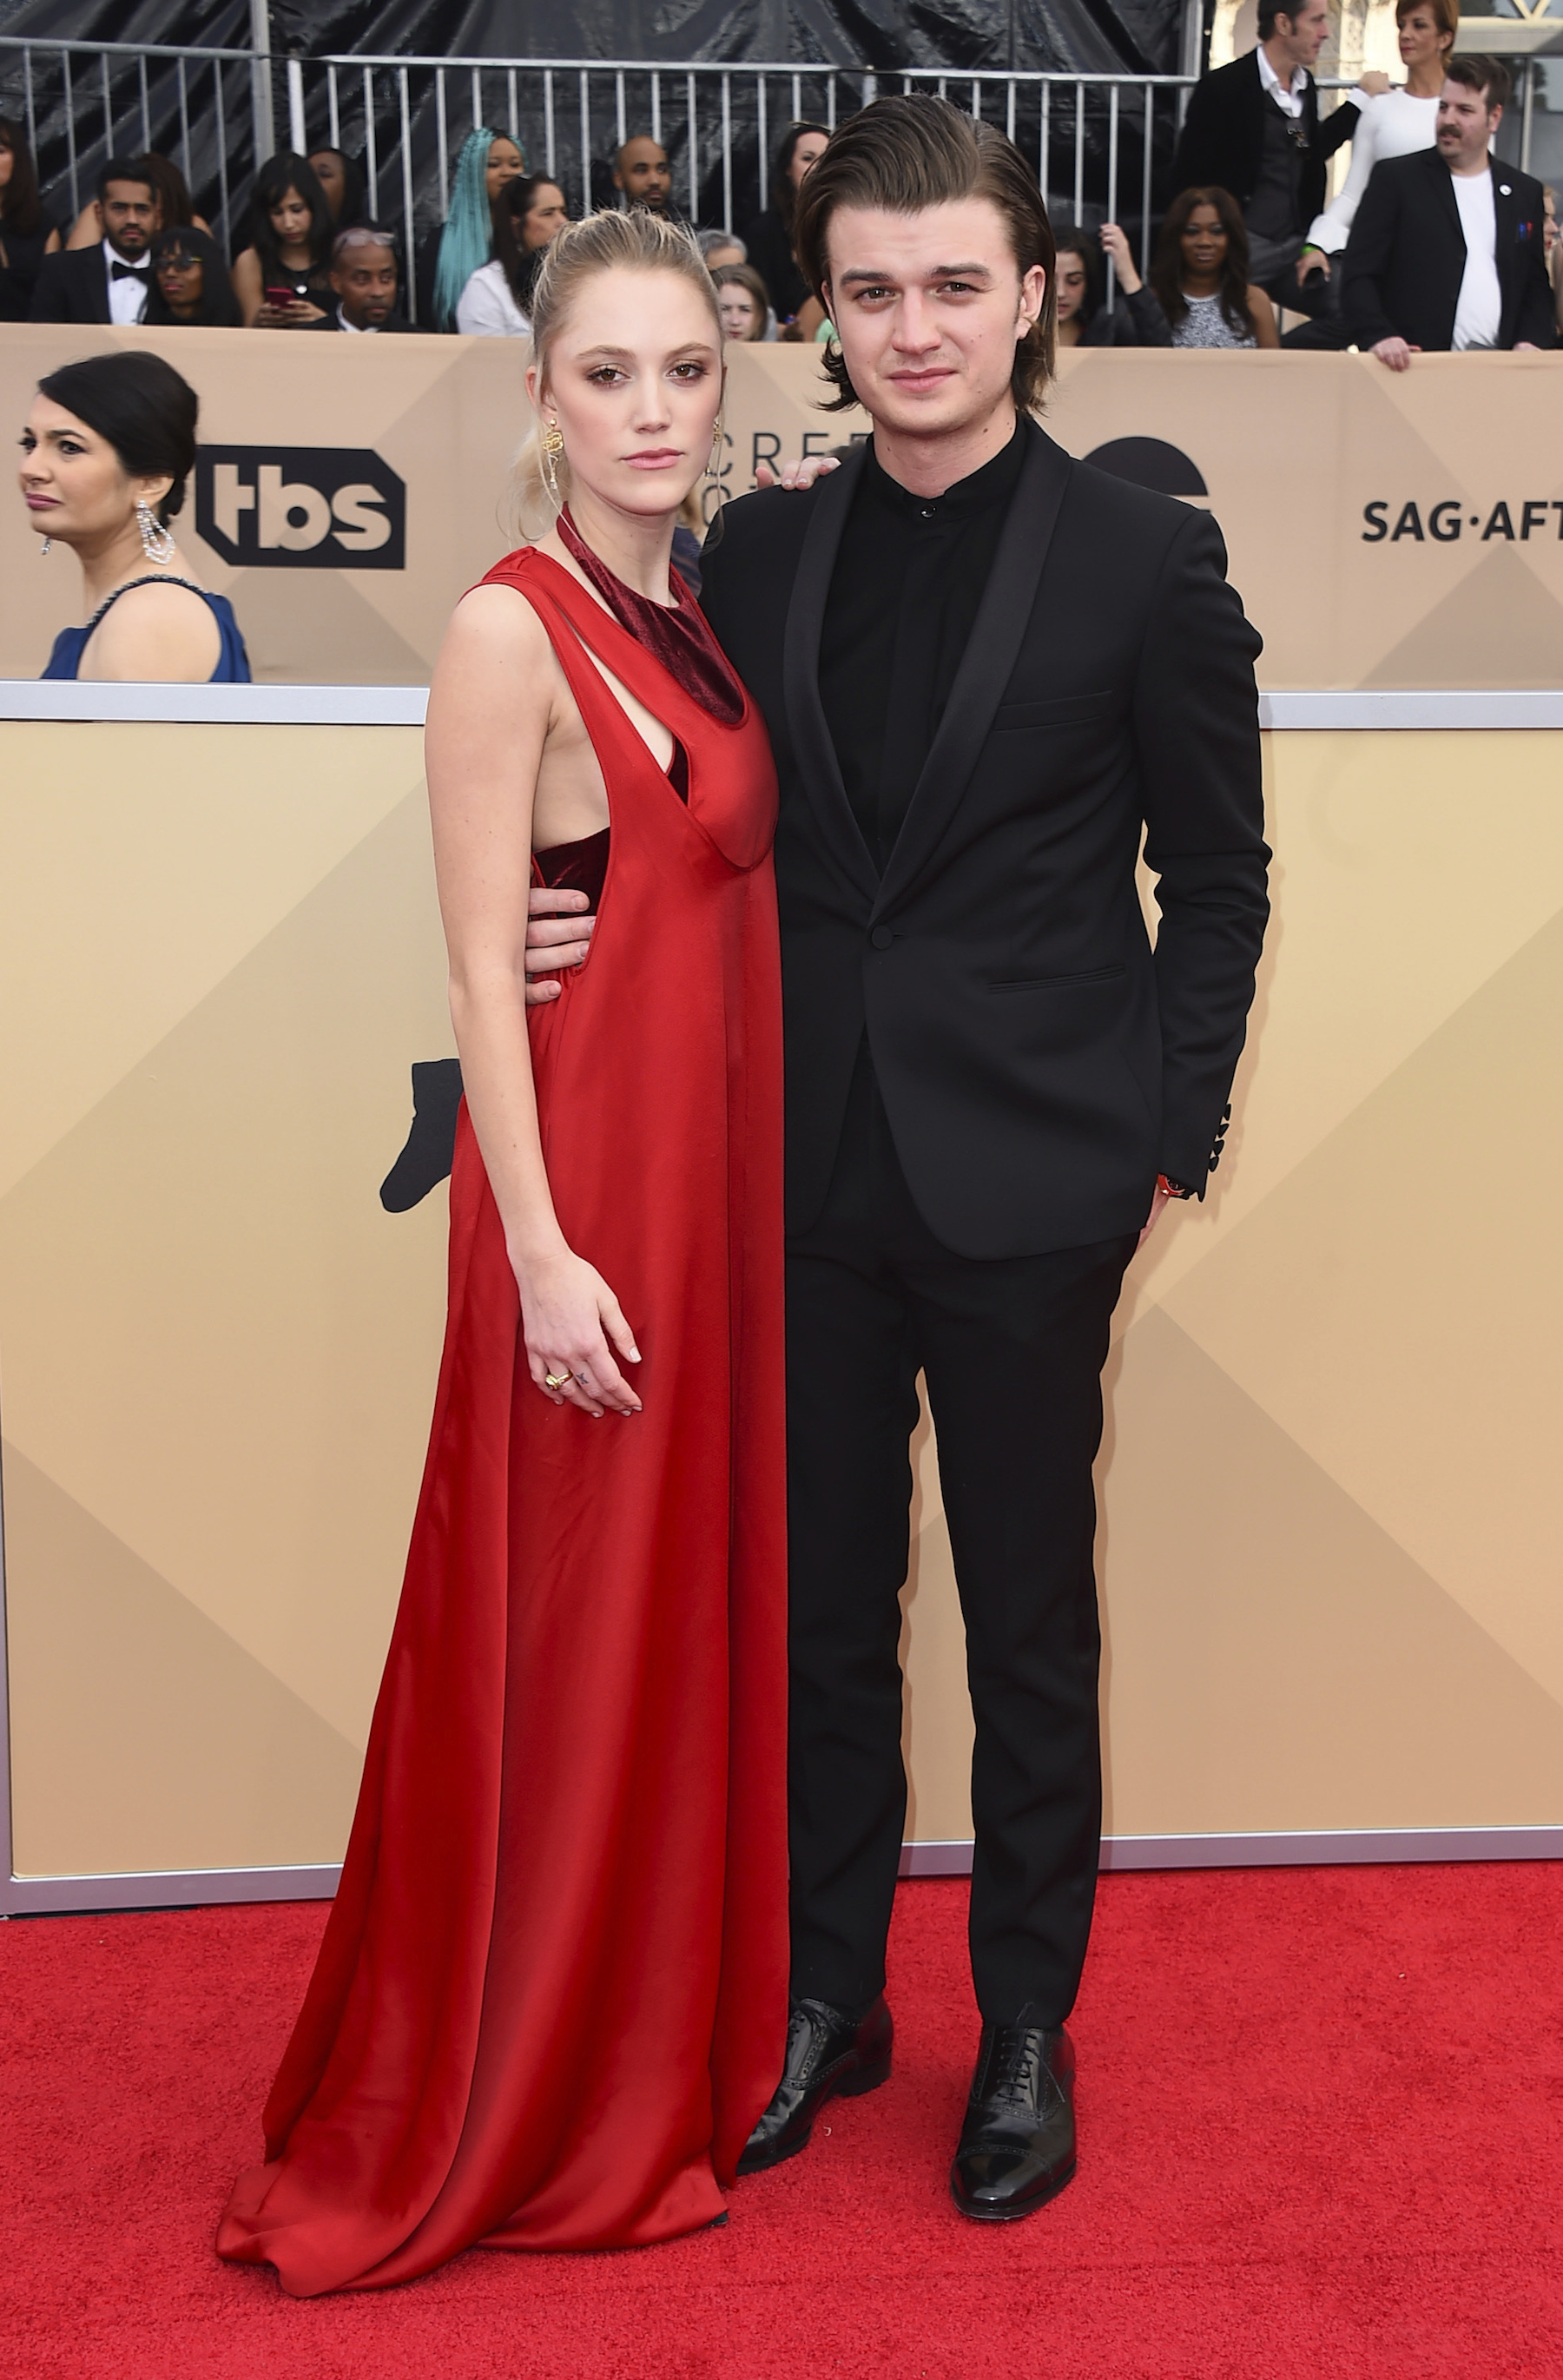 <div class='meta'><div class='origin-logo' data-origin='AP'></div><span class='caption-text' data-credit='Jordan Strauss/Invision/AP'>Maika Monroe, left, and Joe Keery arrive at the 24th annual Screen Actors Guild Awards at the Shrine Auditorium & Expo Hall on Sunday, Jan. 21, 2018, in Los Angeles.</span></div>